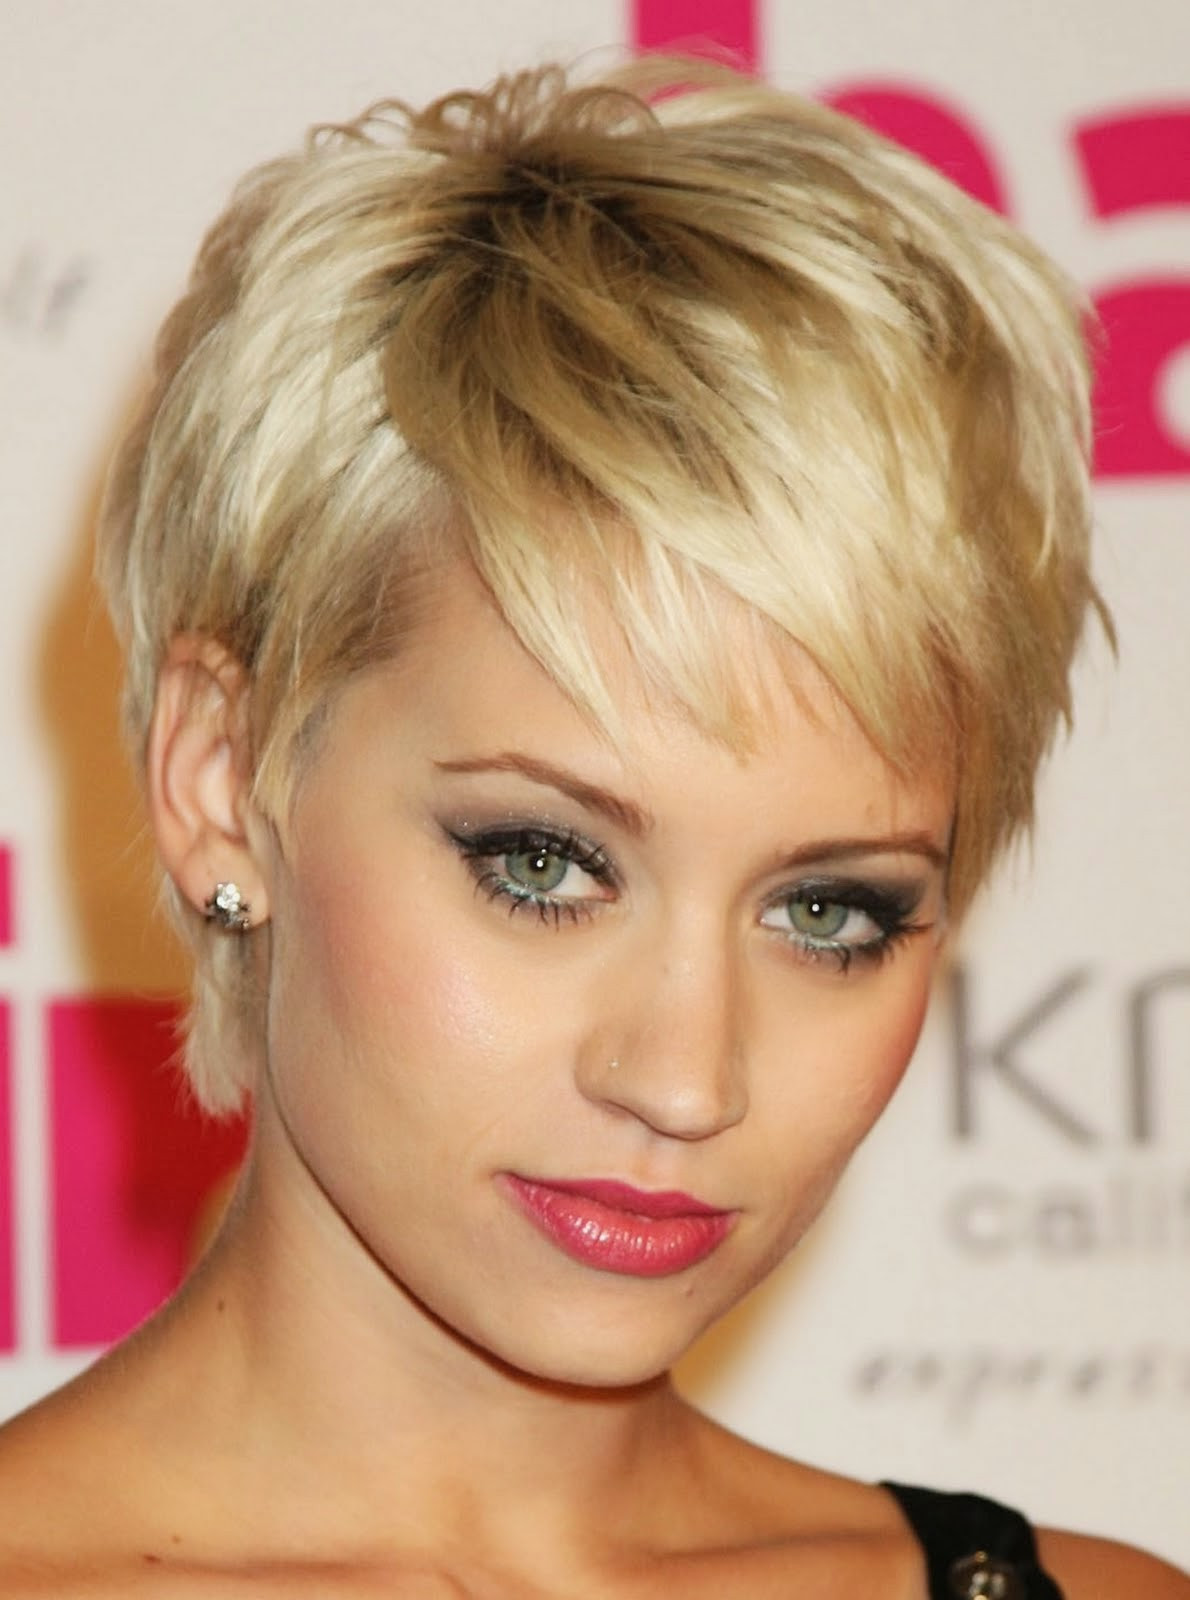 Best ideas about Hairstyle For Short Fine Hair . Save or Pin Short Hairstyles for Fine Hair Now.